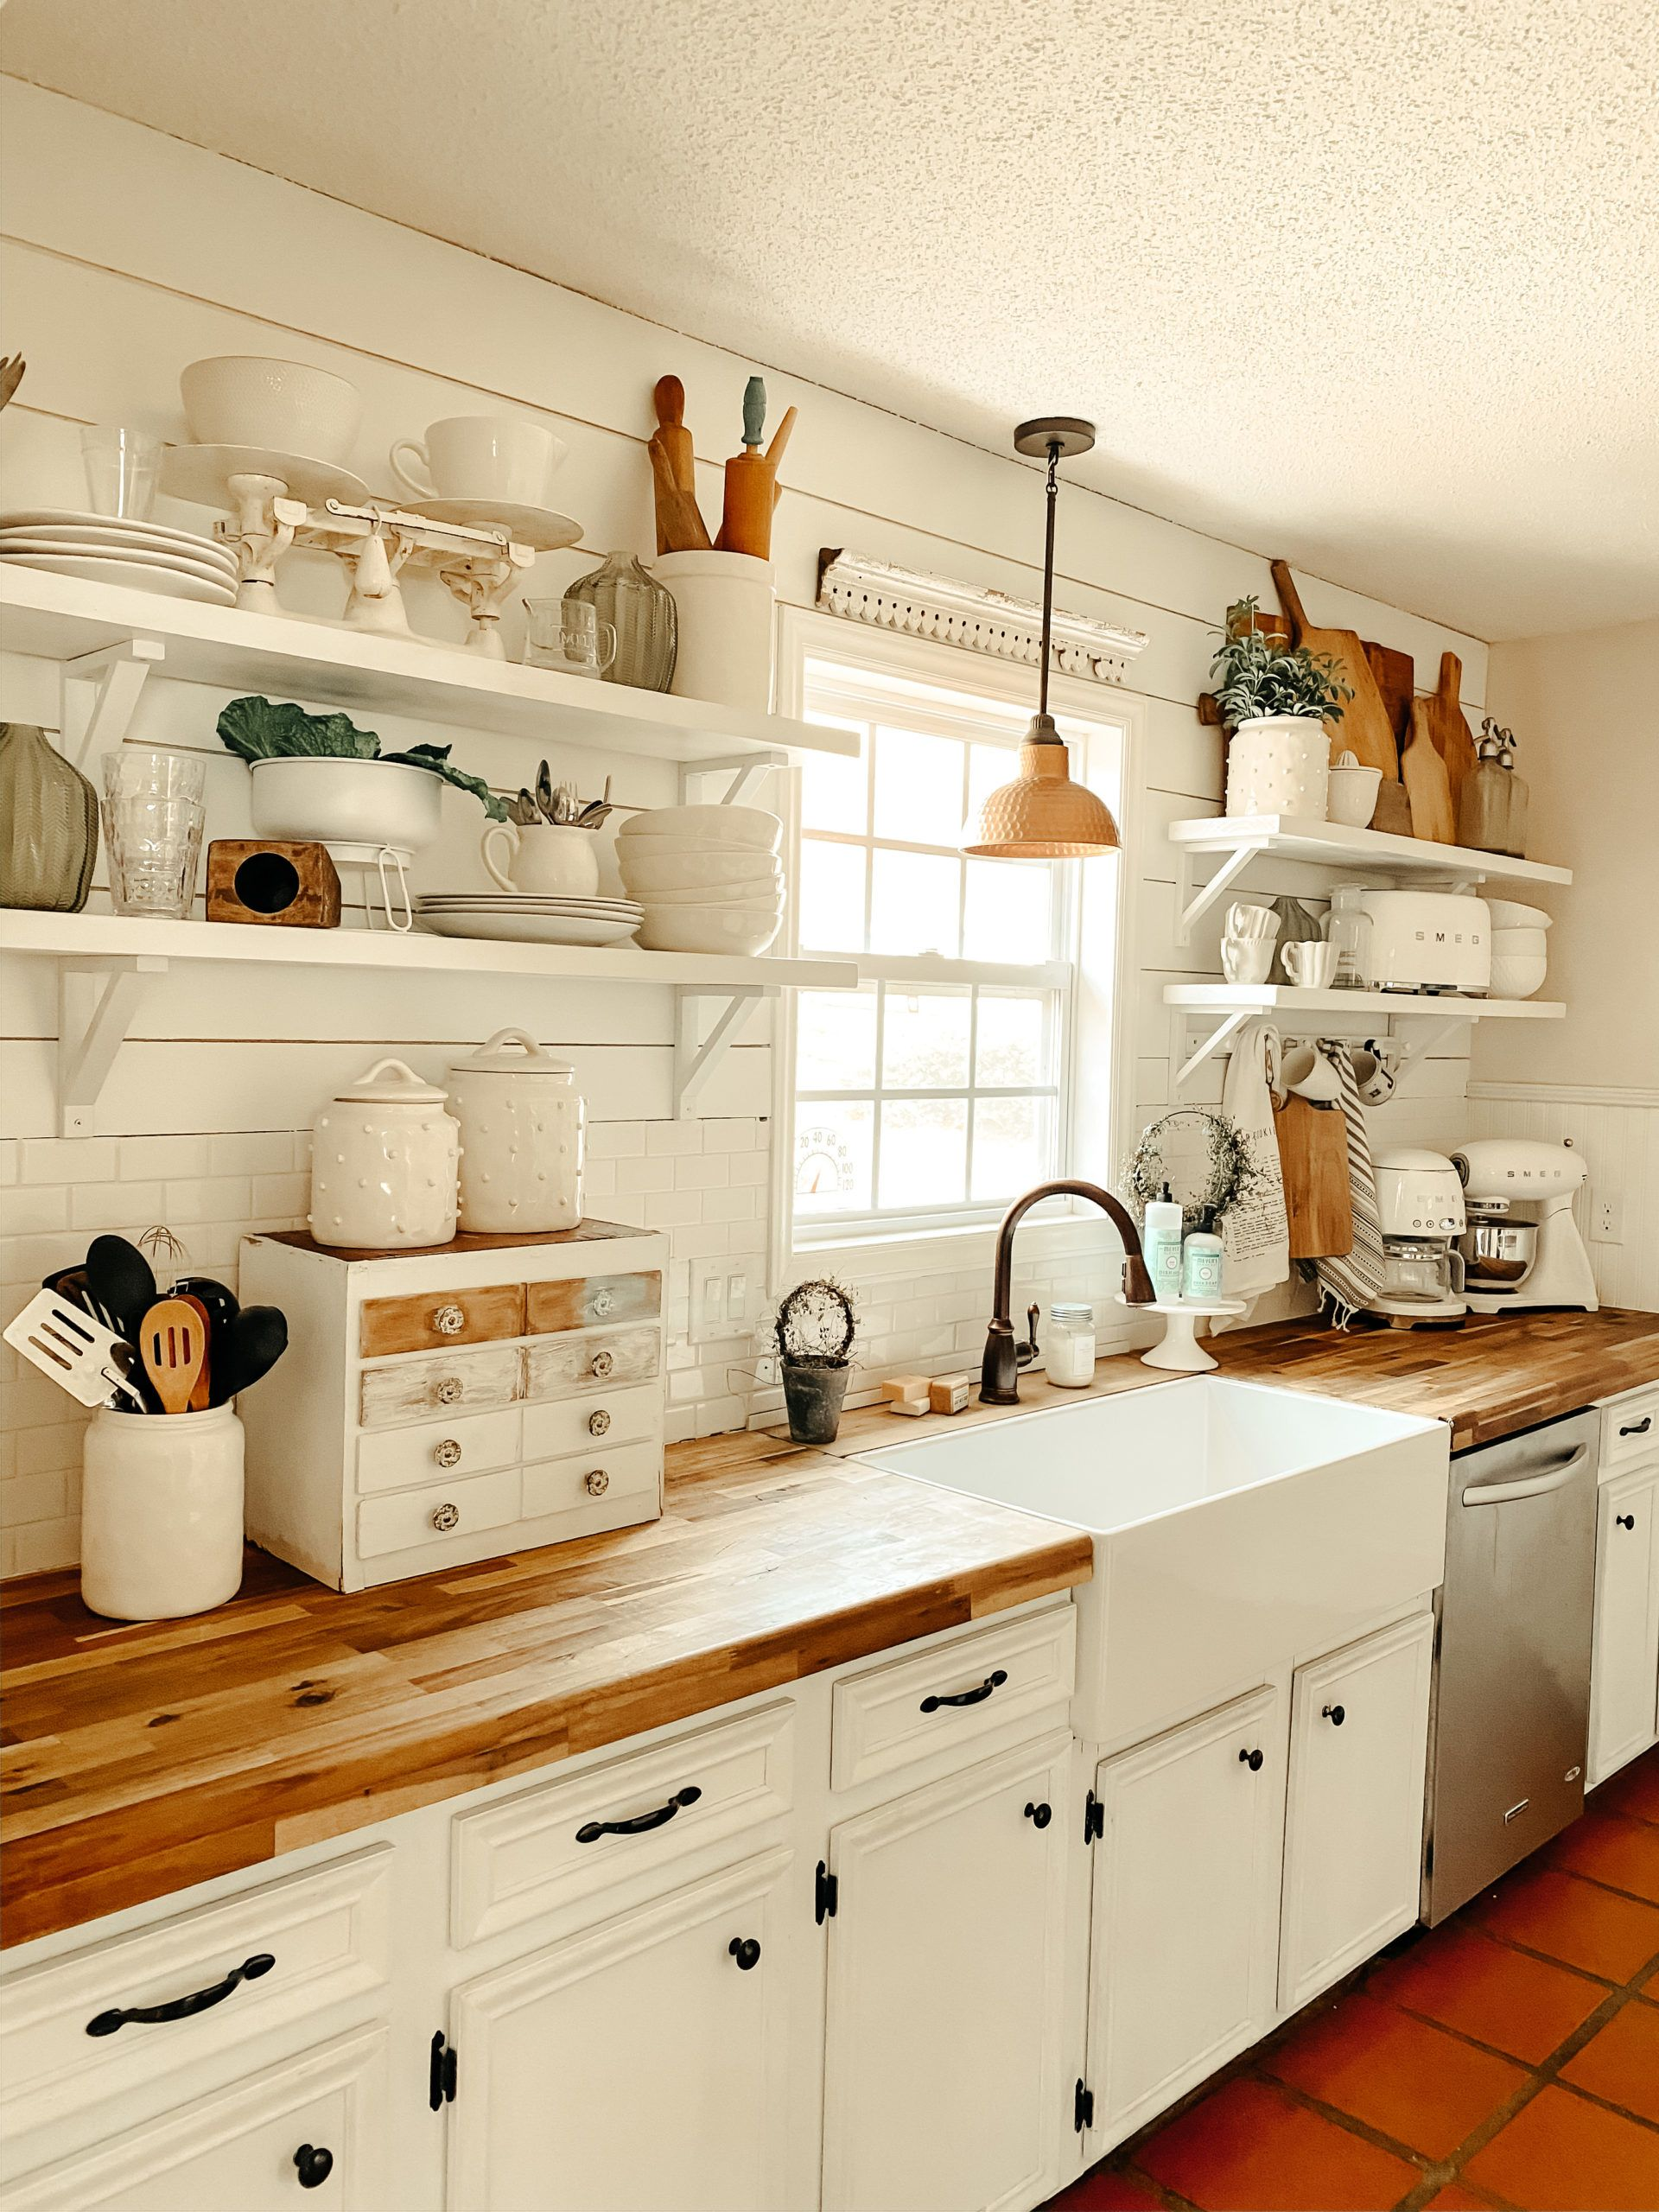 simple open shelving styling in 2020 cottage kitchen decor kitchen decor cottage kitchen on kitchen decor open shelves id=38381